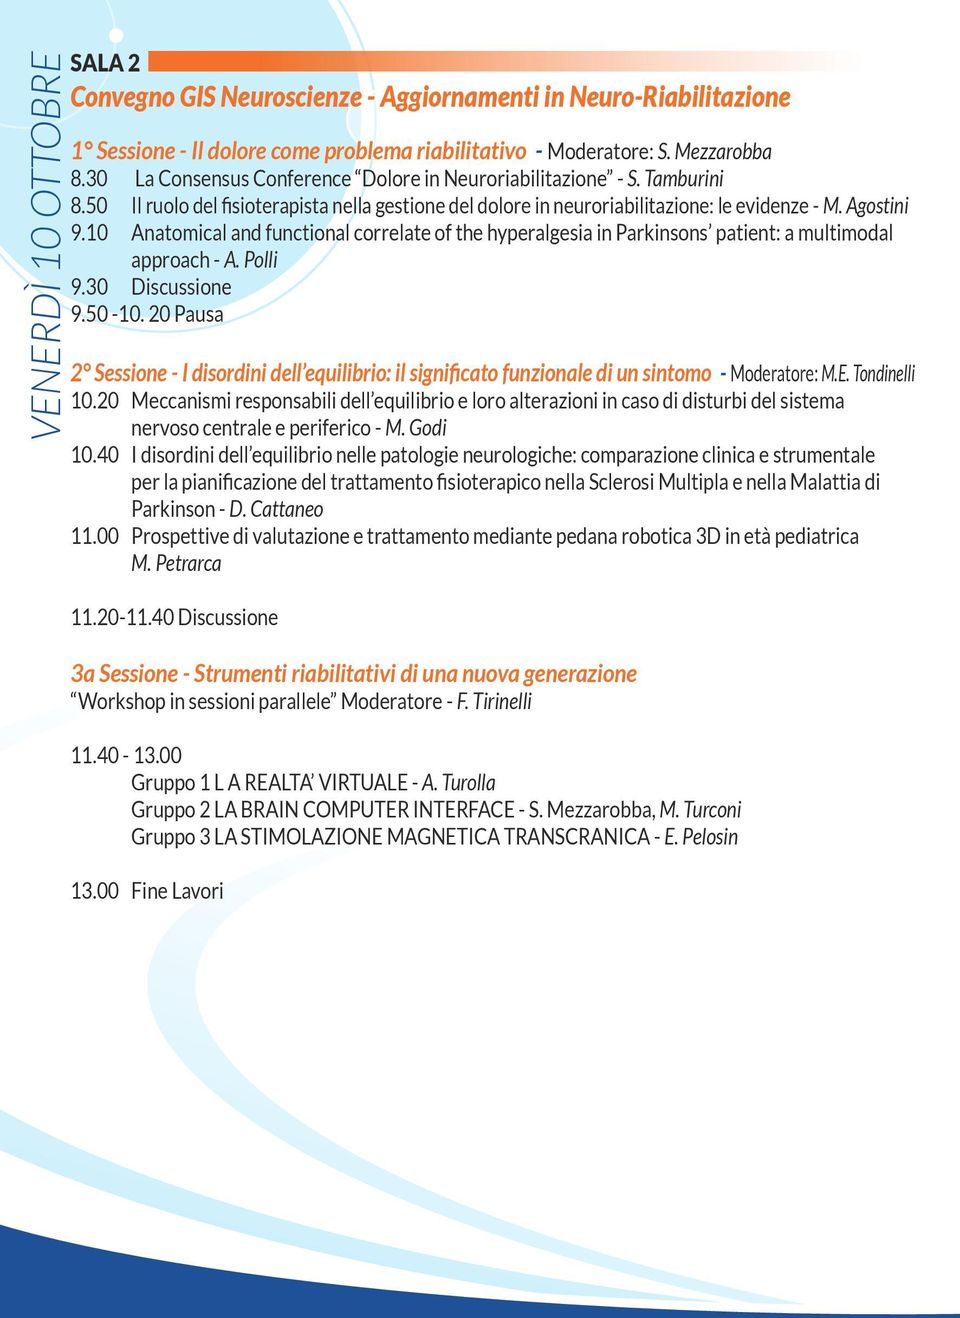 10 Anatomical and functional correlate of the hyperalgesia in Parkinsons patient: a multimodal approach - A. Polli 9.30 Discussione 9.50-10.